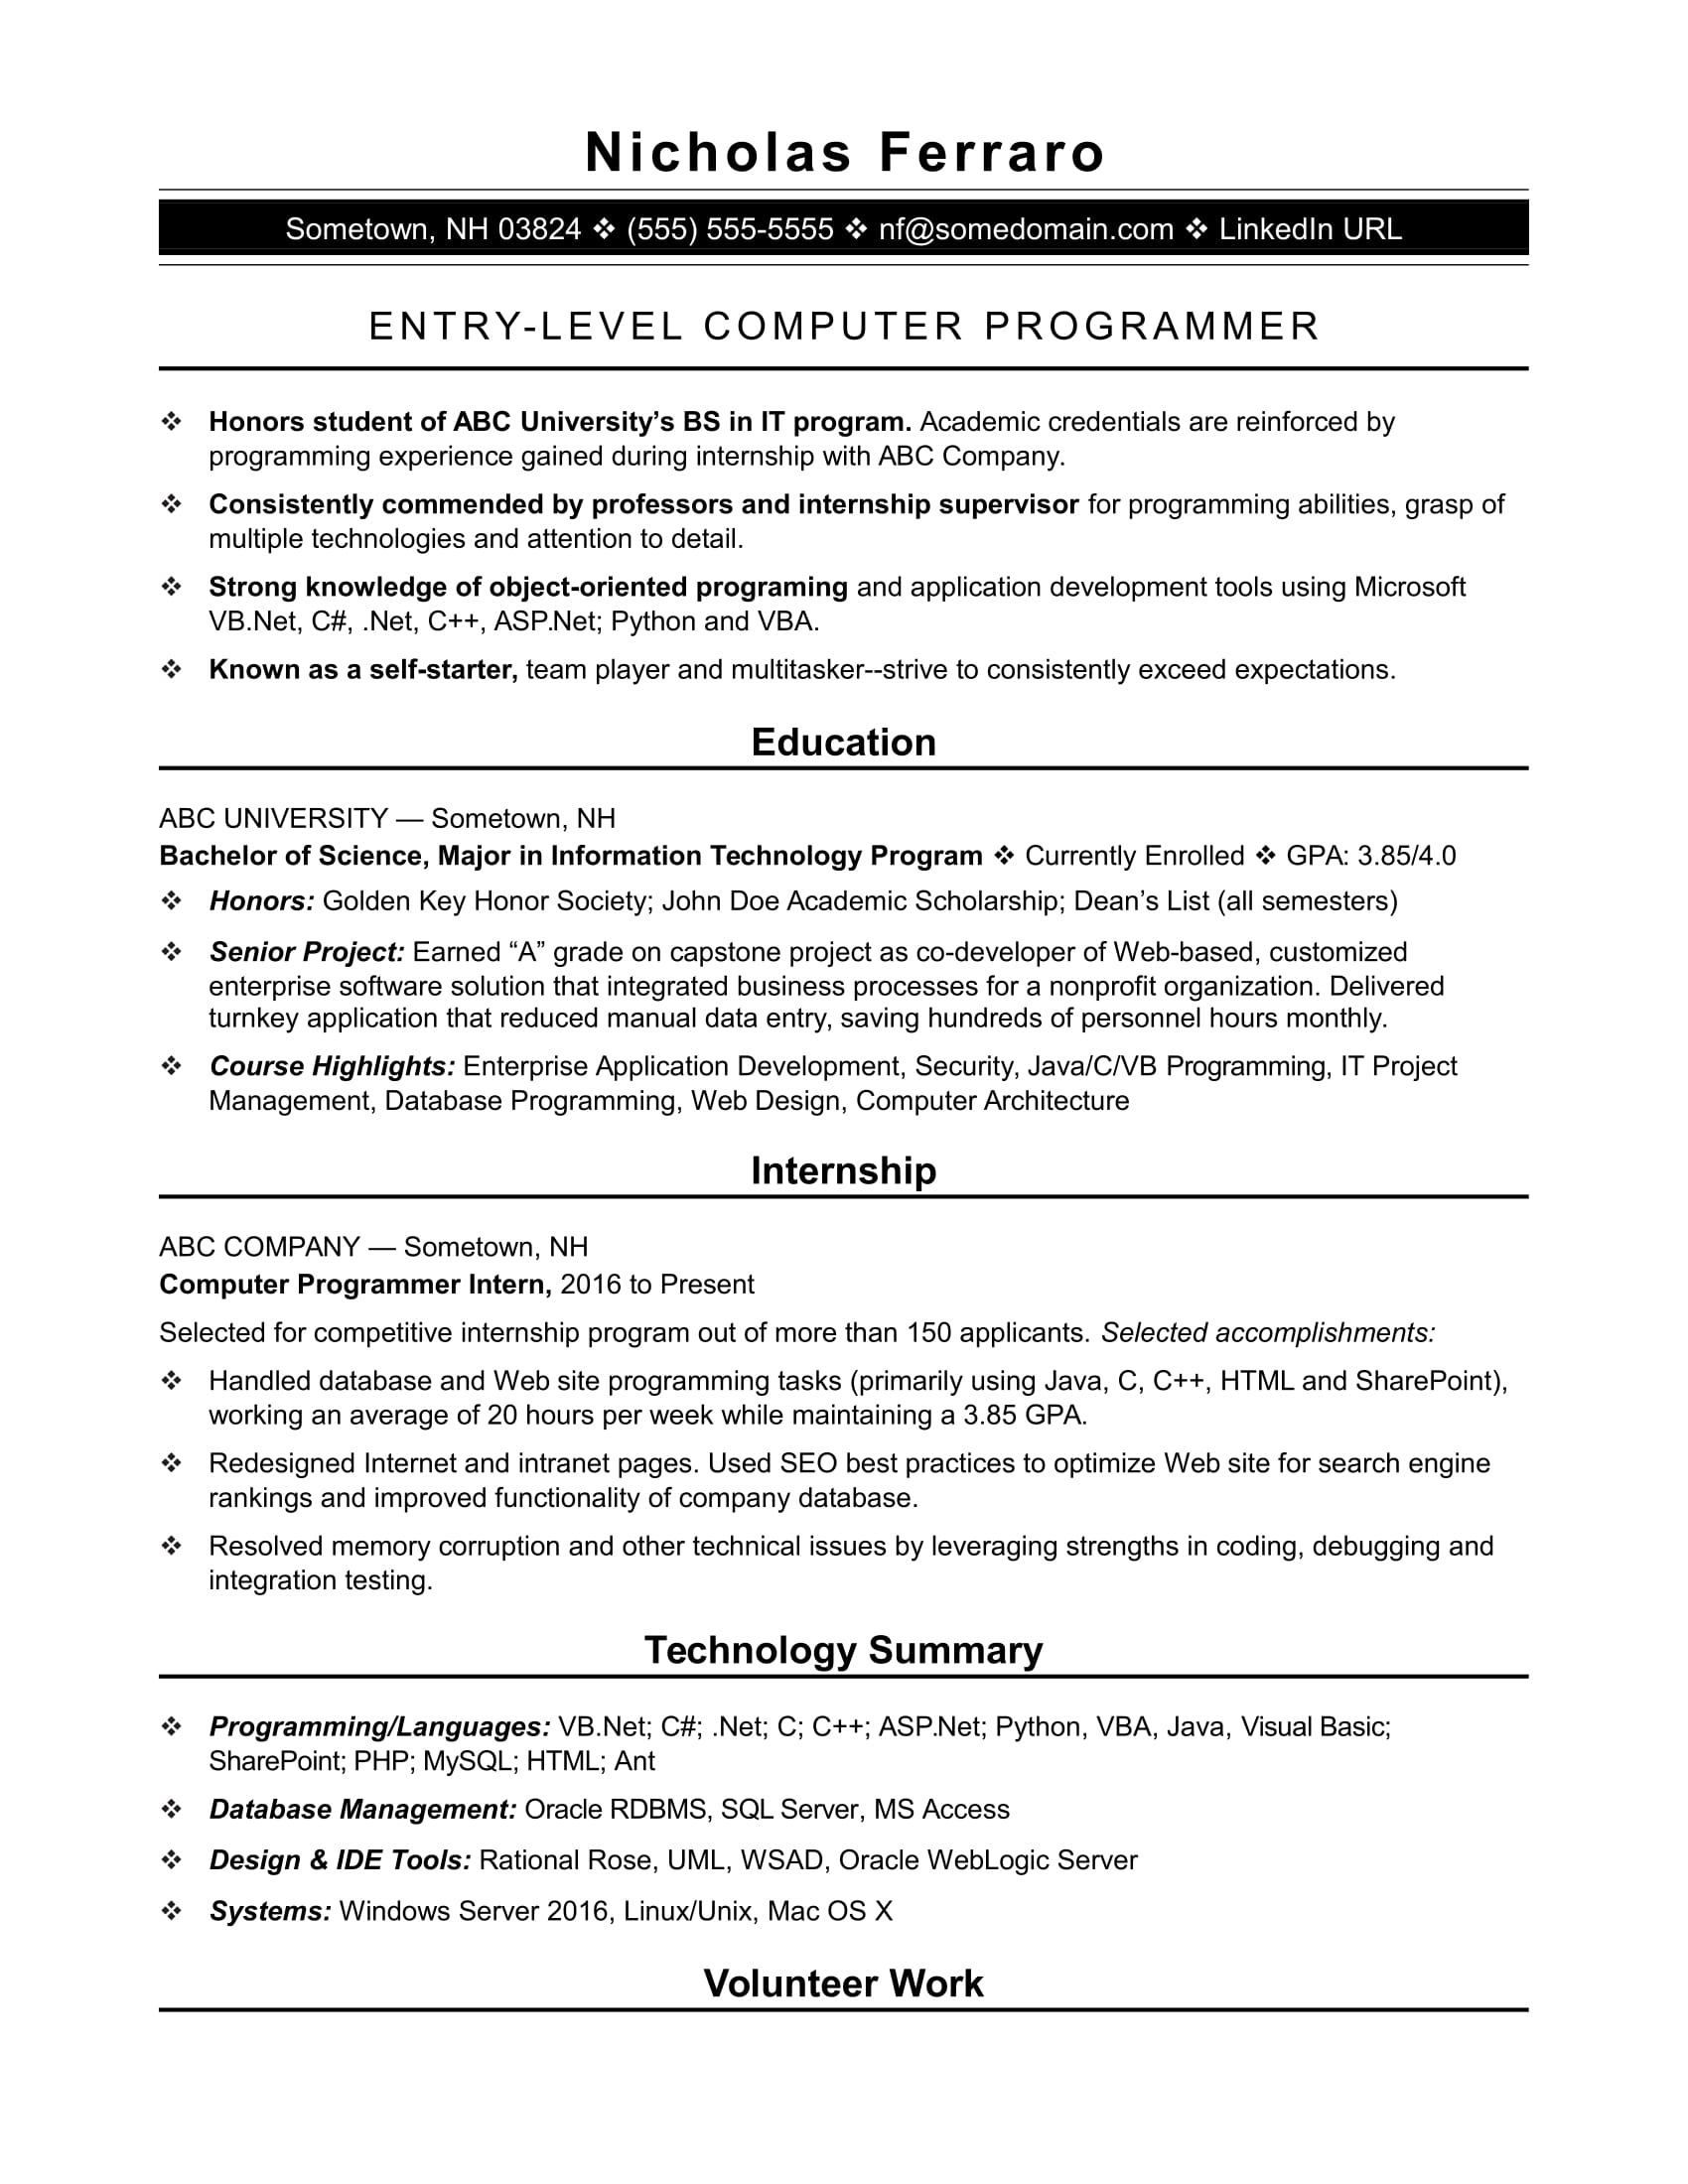 Sample Resume For An Entry Level Computer Programmer  Beginner Resume